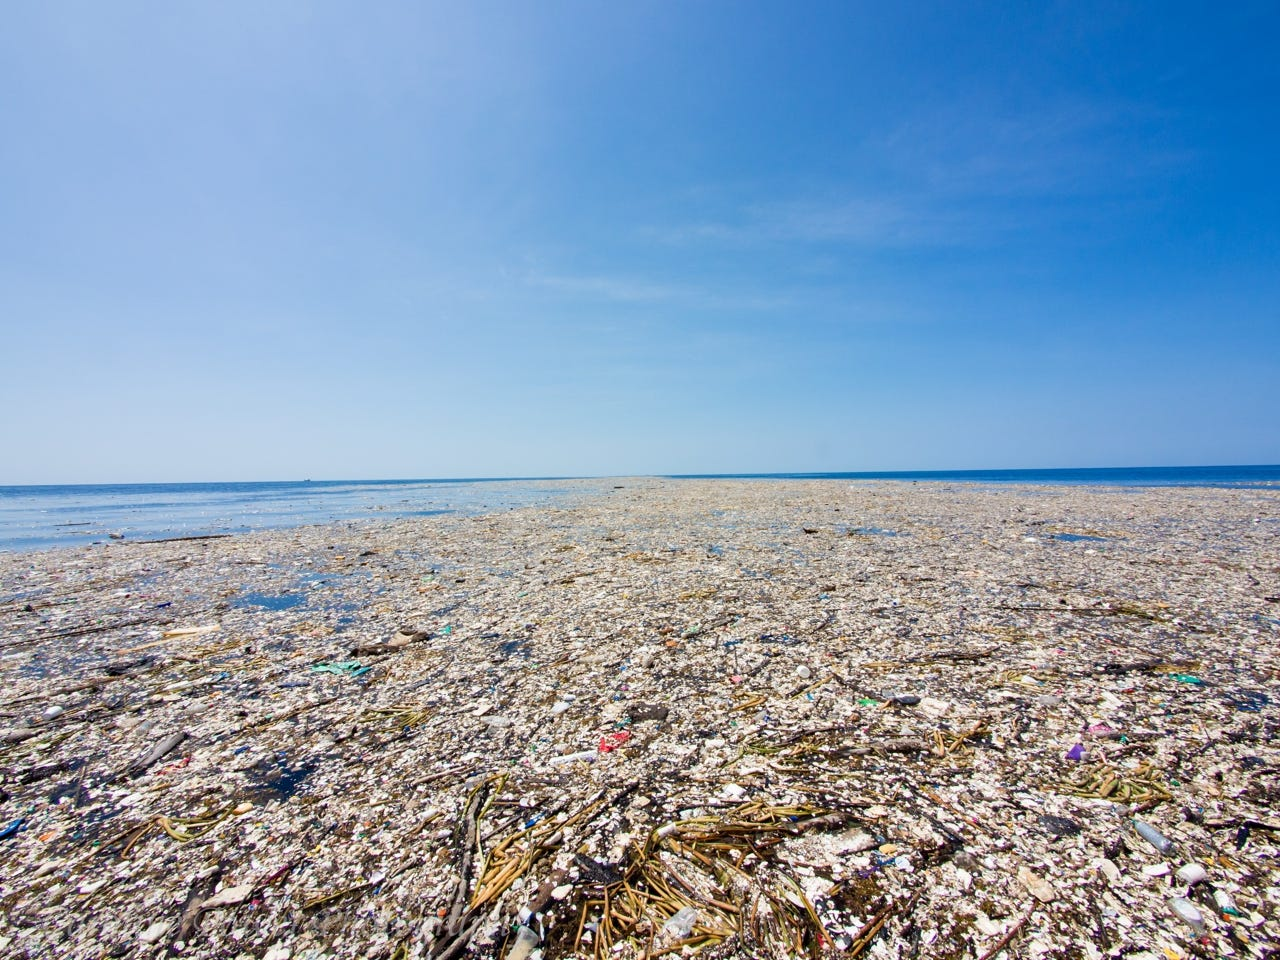 the great pacific garbage patch is a cluster of garbage in the ocean that  is the size of Russia : thalassophobia